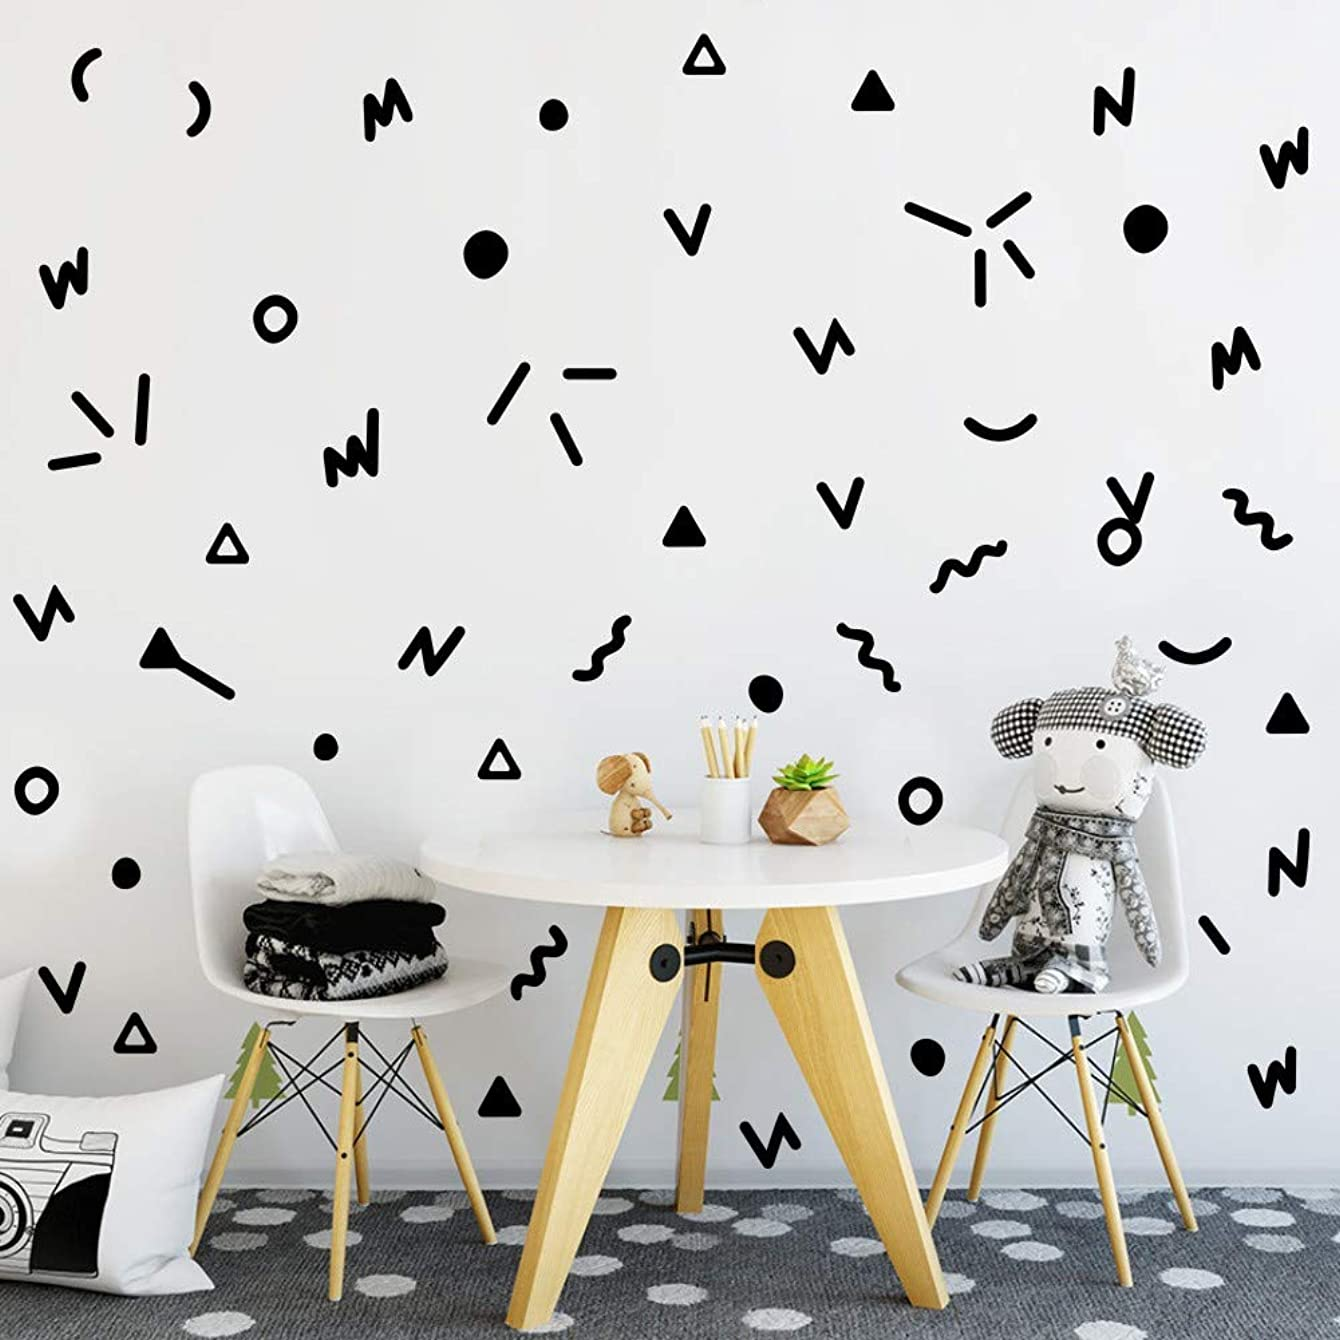 Simple Black Geometric Wall Sticker Primary Vinyl Wall Decal Doodle Wall Stickers for Nursery Decoration(96 Pcs Black Stickers)